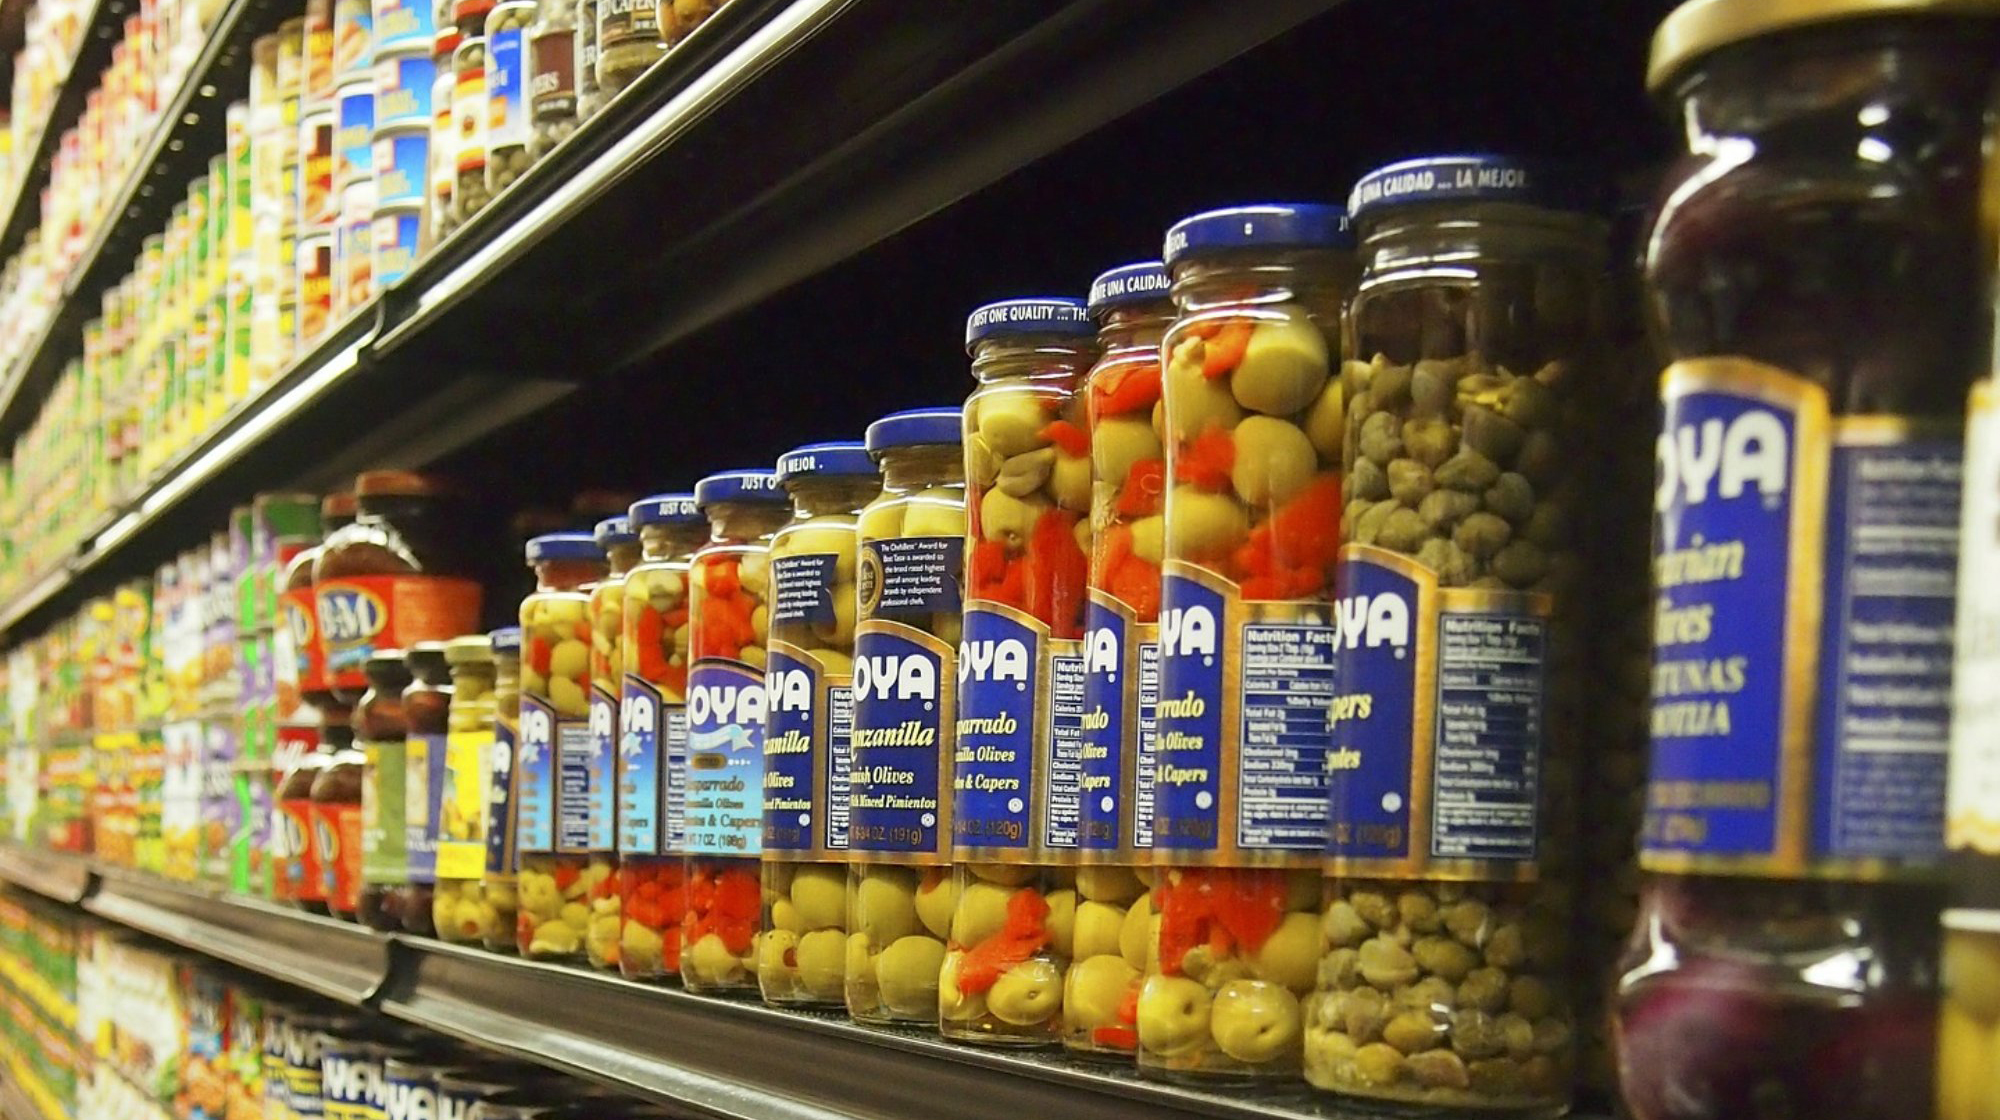 HyperCity Retail expects to gain 10% of its portfolio from International food products by next year